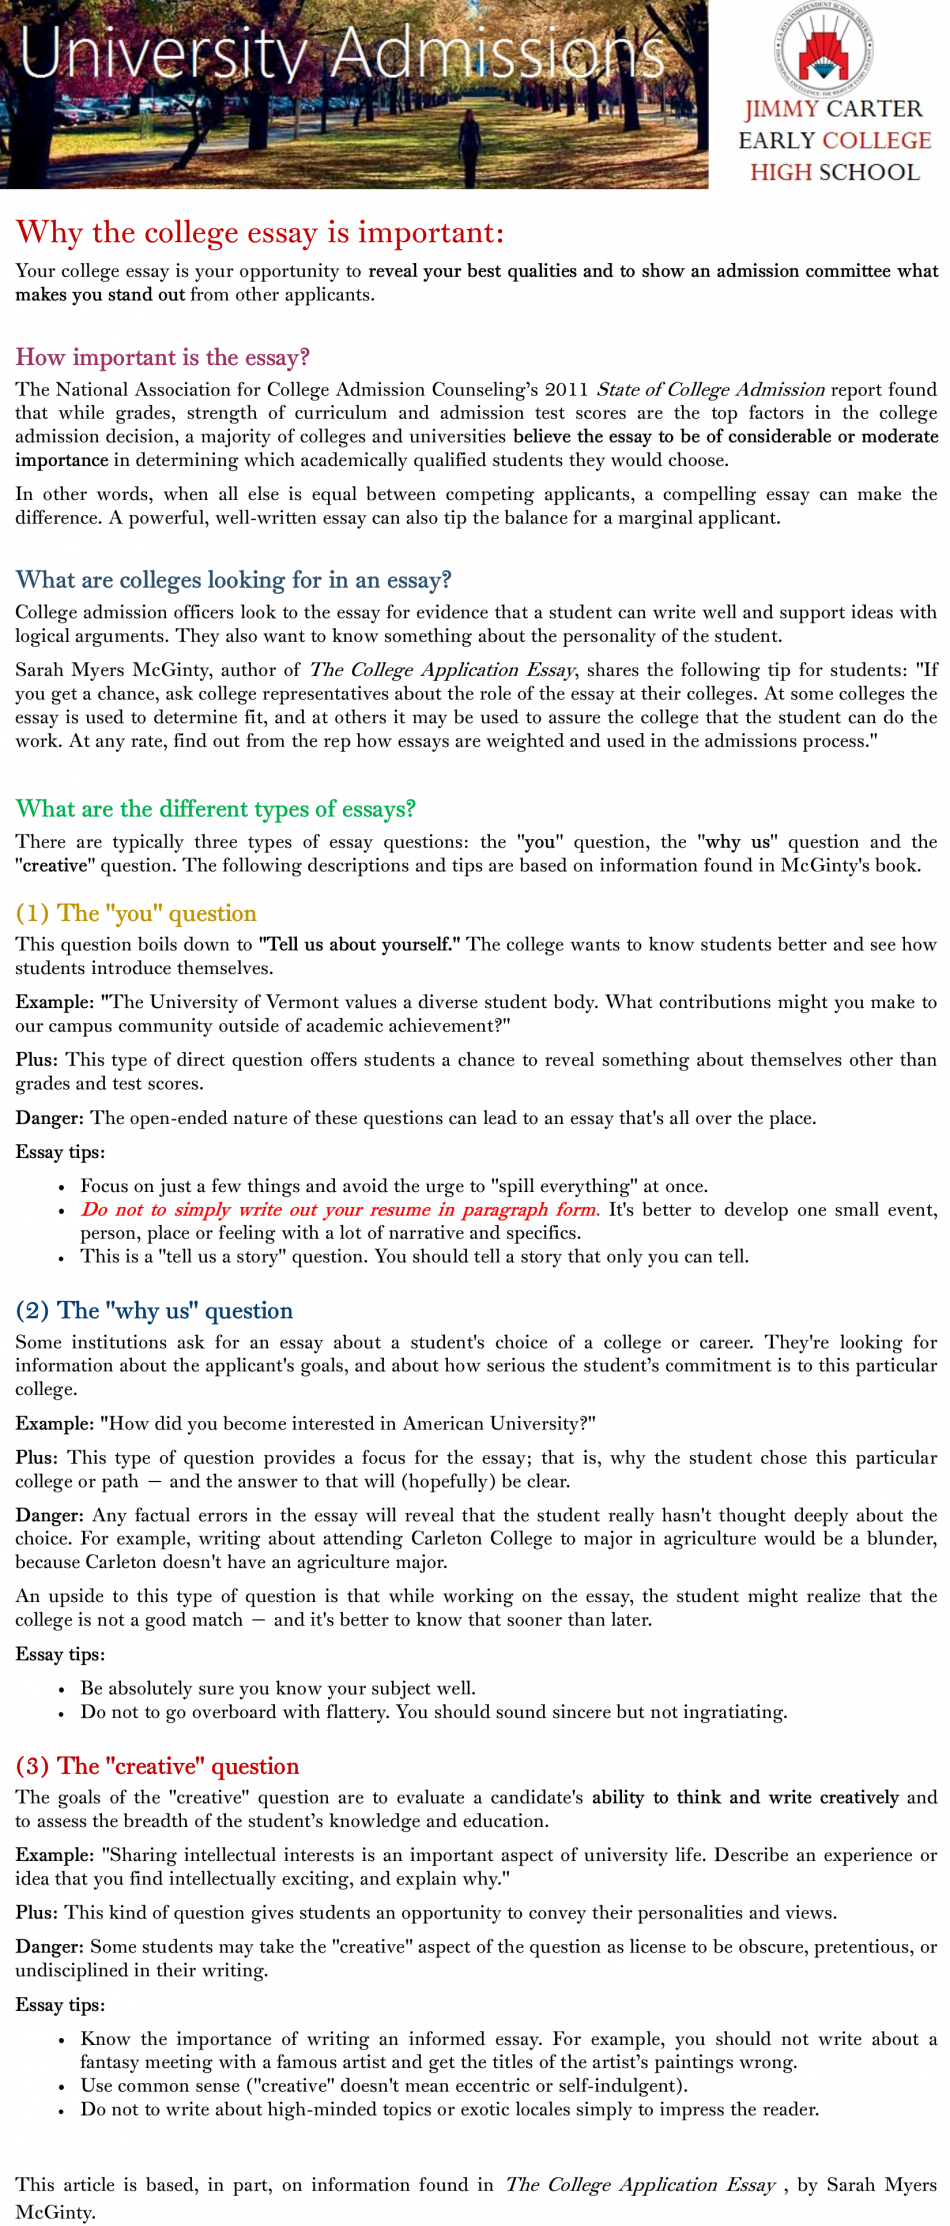 025 College Admission Essay Example Img Pd 015819 1hrlsw Rare Prompts Format Examples Ivy League Full